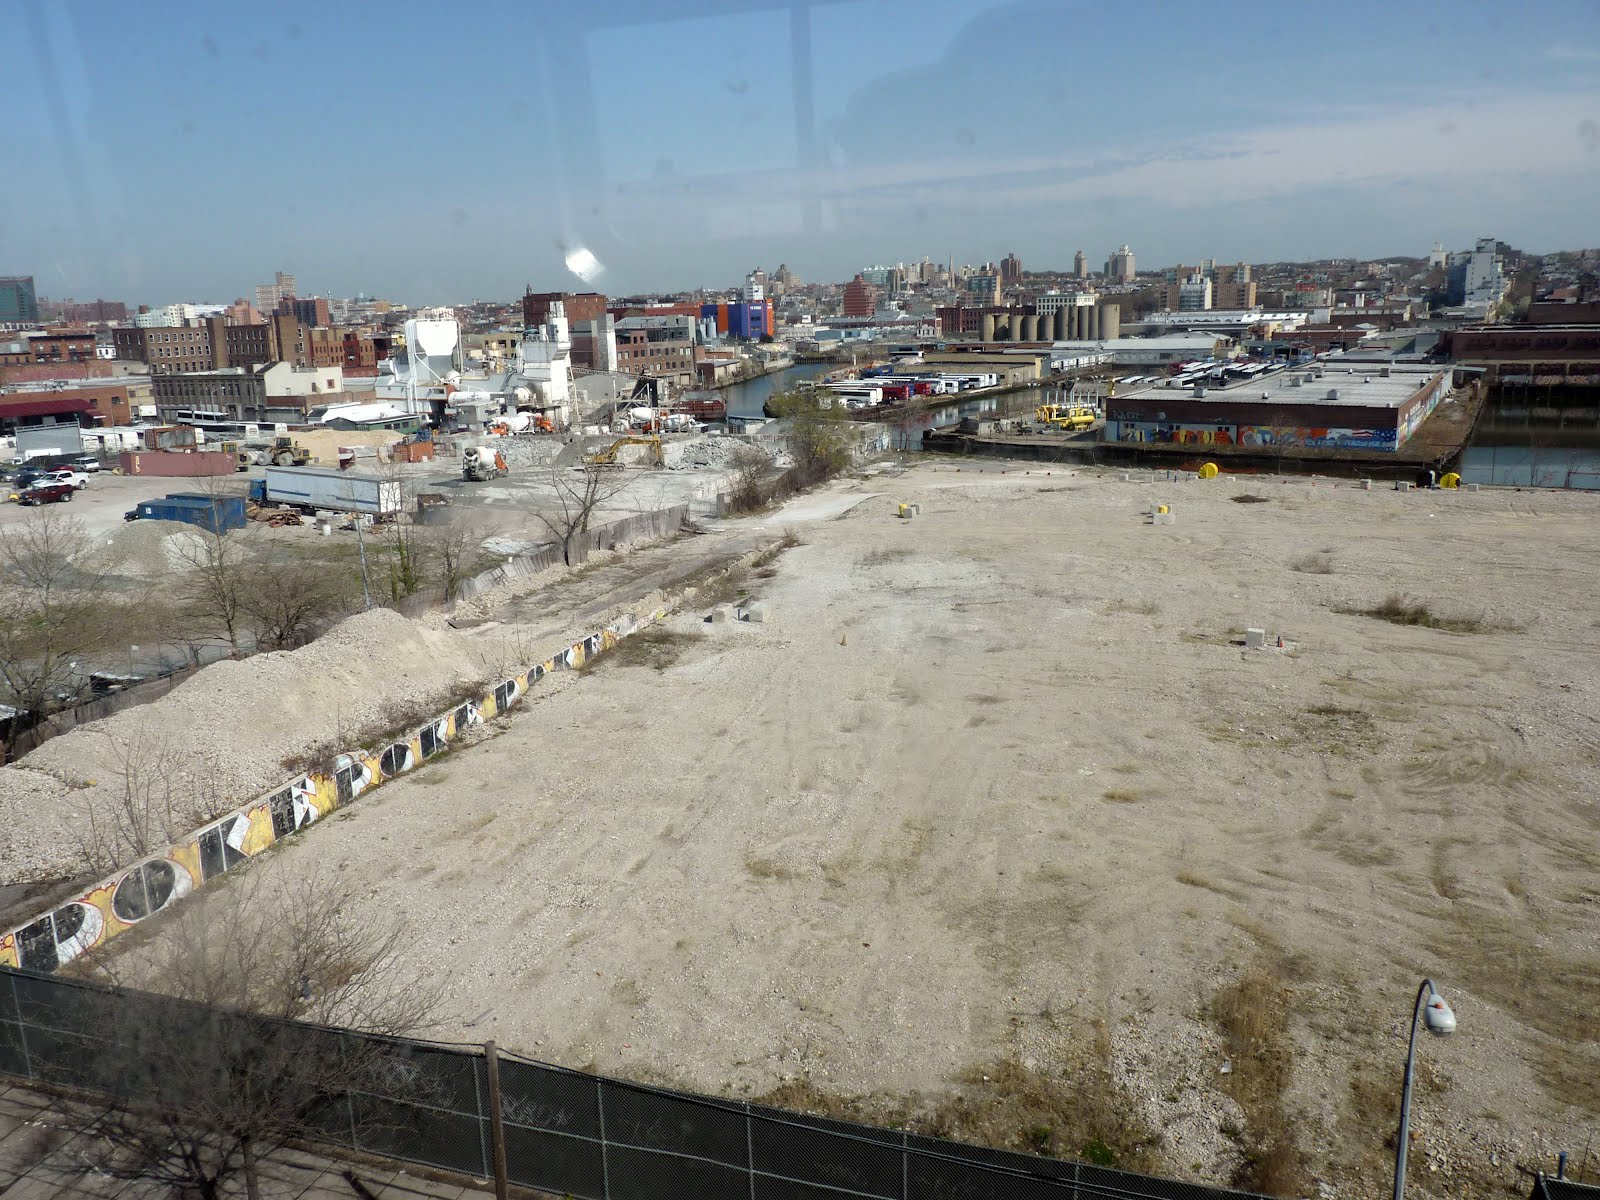 8d74121551 Public Place, the area once known as Citizens Gas Works, a manufactured gas  site, is a highly contaminated plot of land along the Gowanus Canal, ...